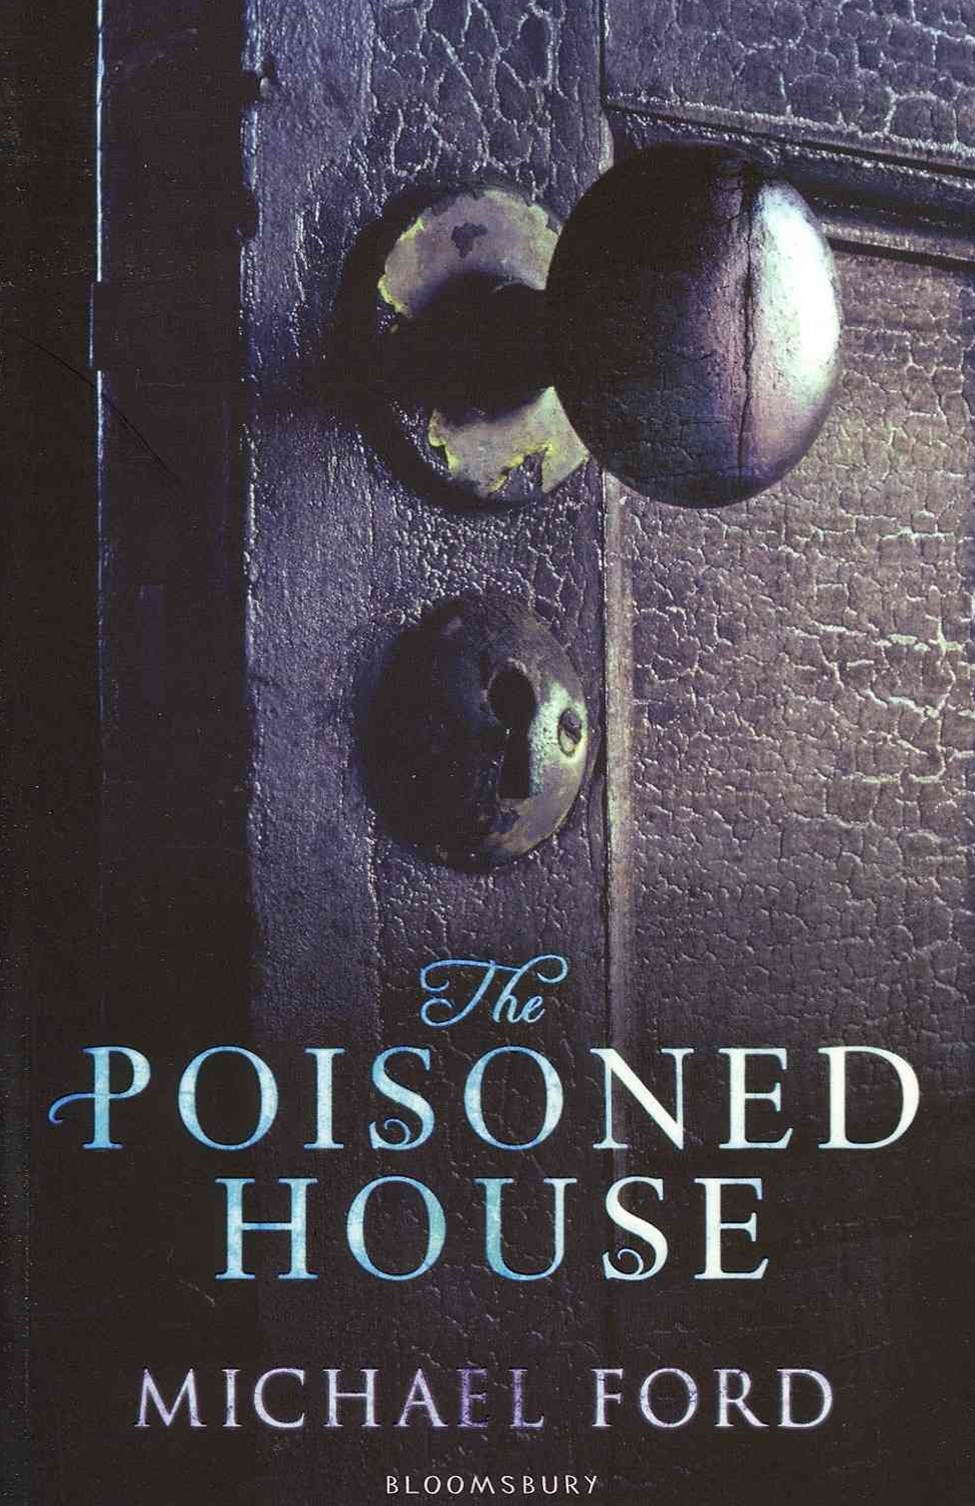 Poisoned House